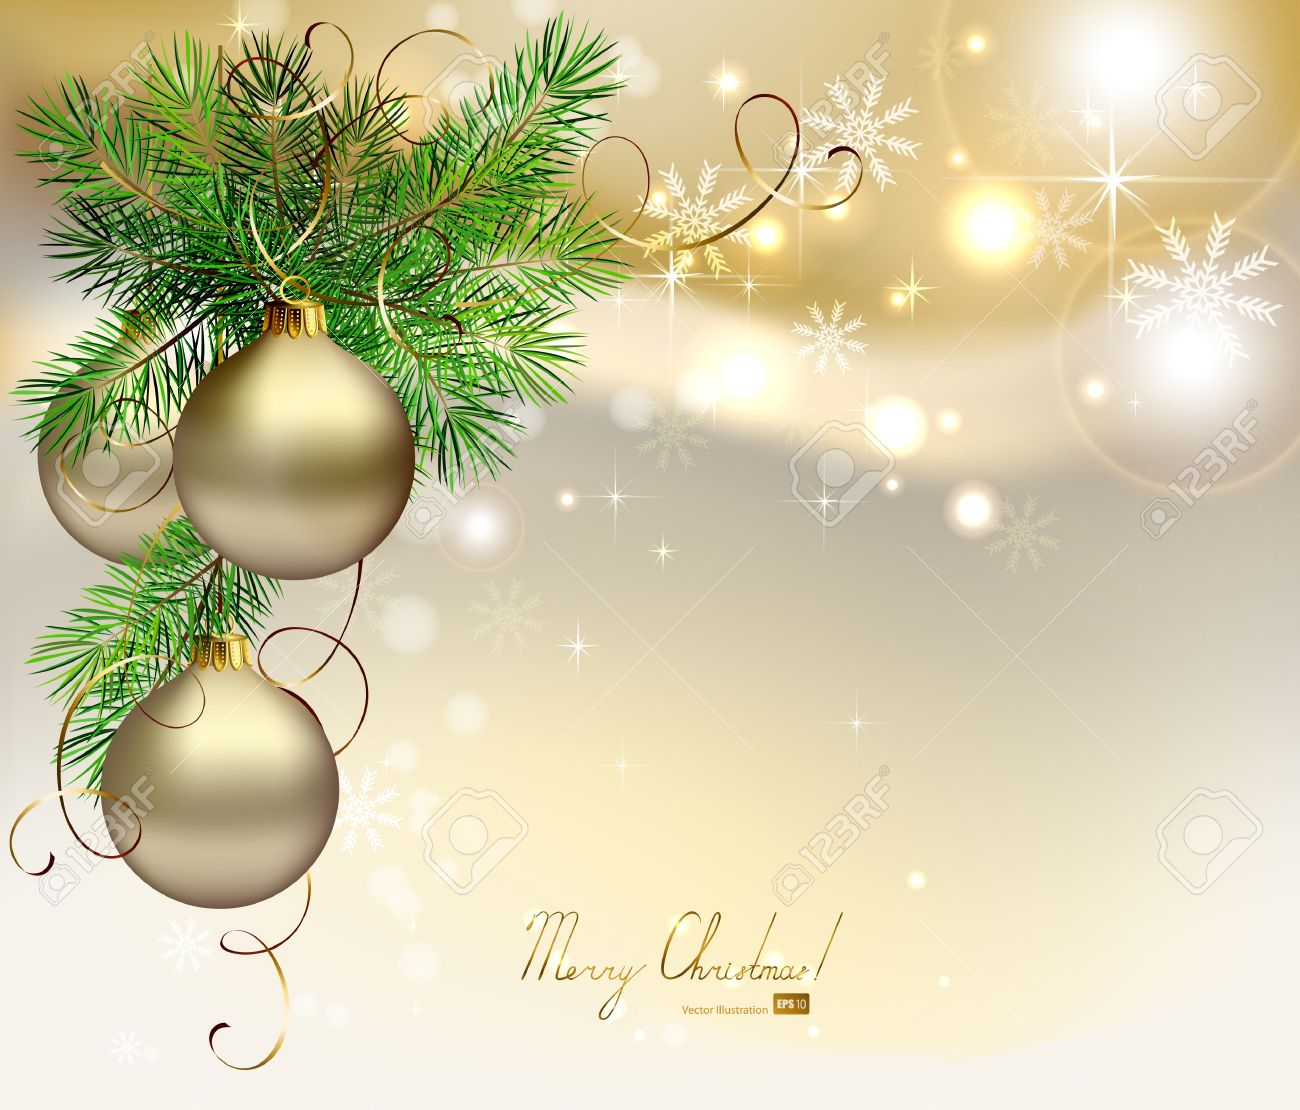 Light Christmas Background With Silver Evening Balls Royalty Free ...